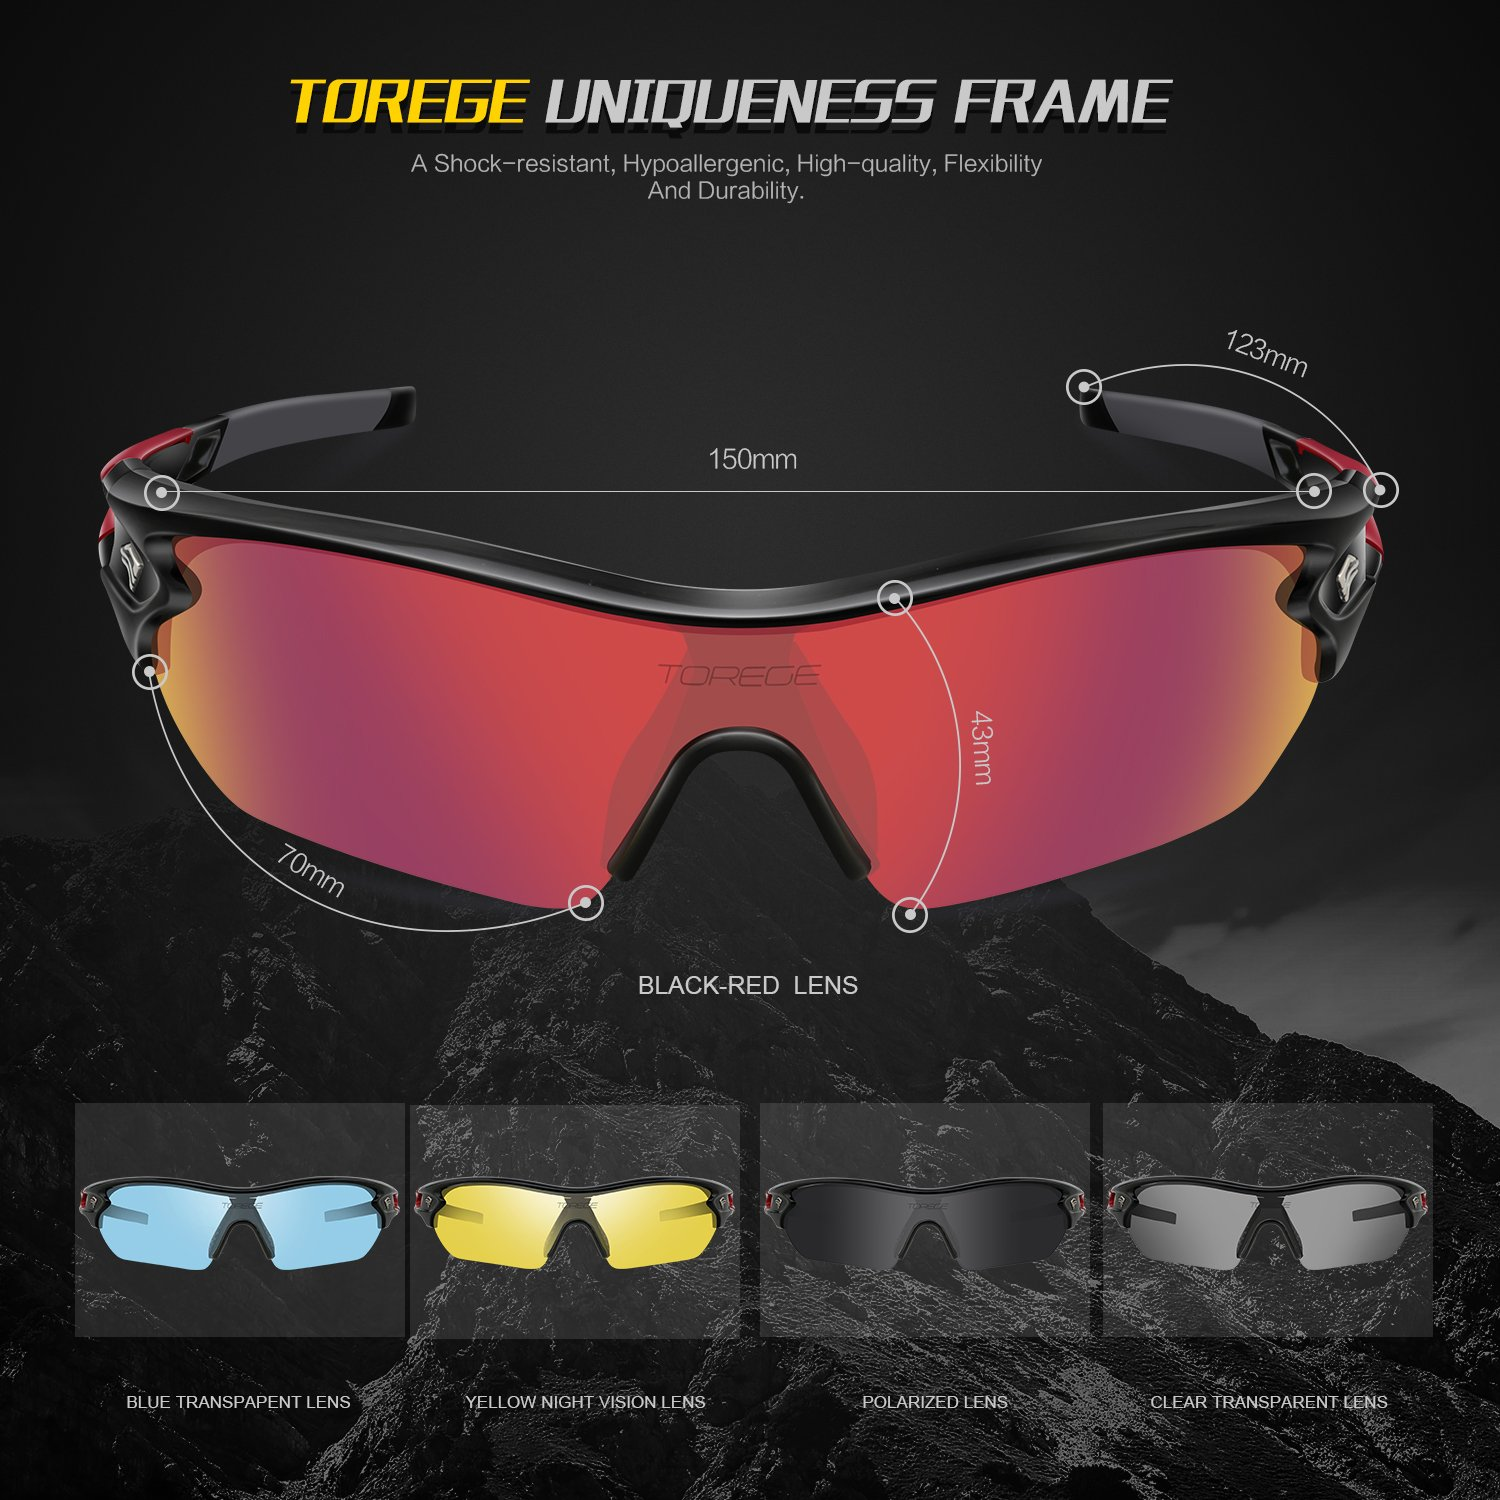 6ffb7bbb00f Amazon.com  TOREGE Polarized Sports Sunglasses with 5 Interchangeable Lenes  for Men Women Cycling Running Driving Fishing Golf Baseball Glasses TR002  (Black ...